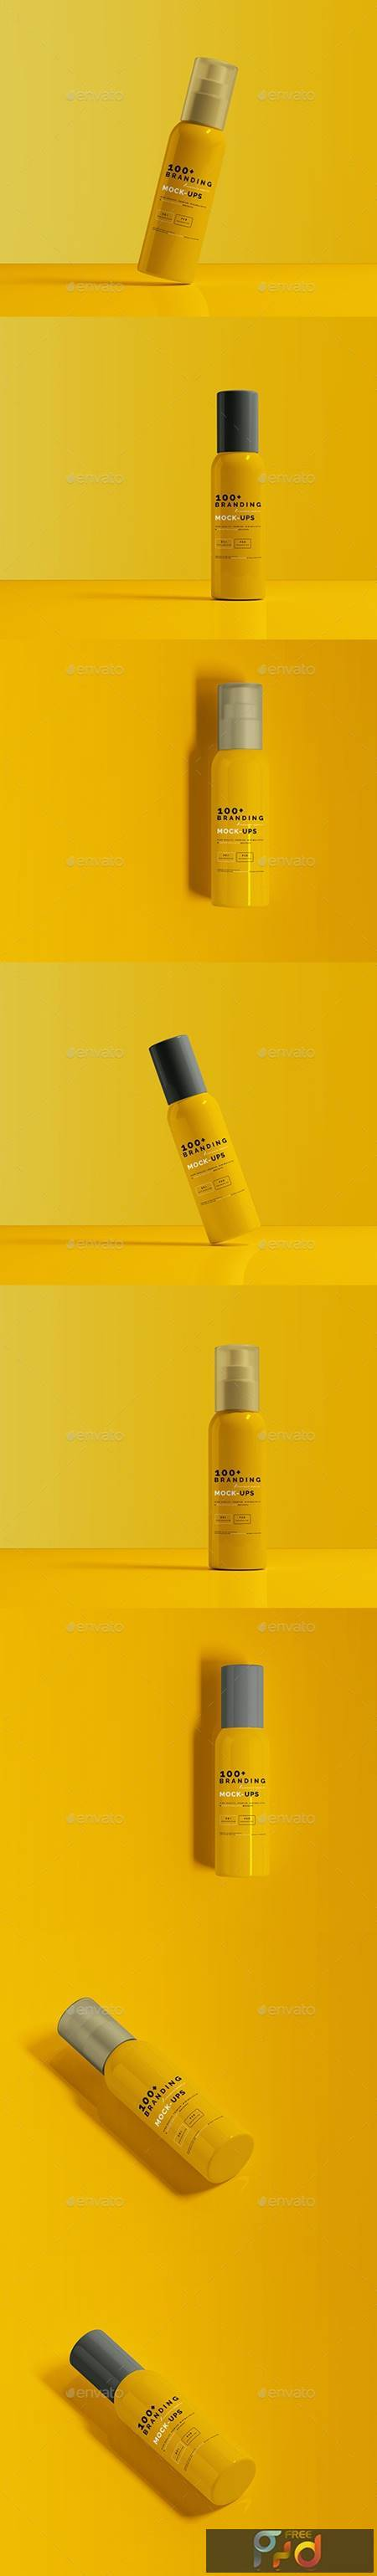 Spray Bottle Mockup 29716675 1